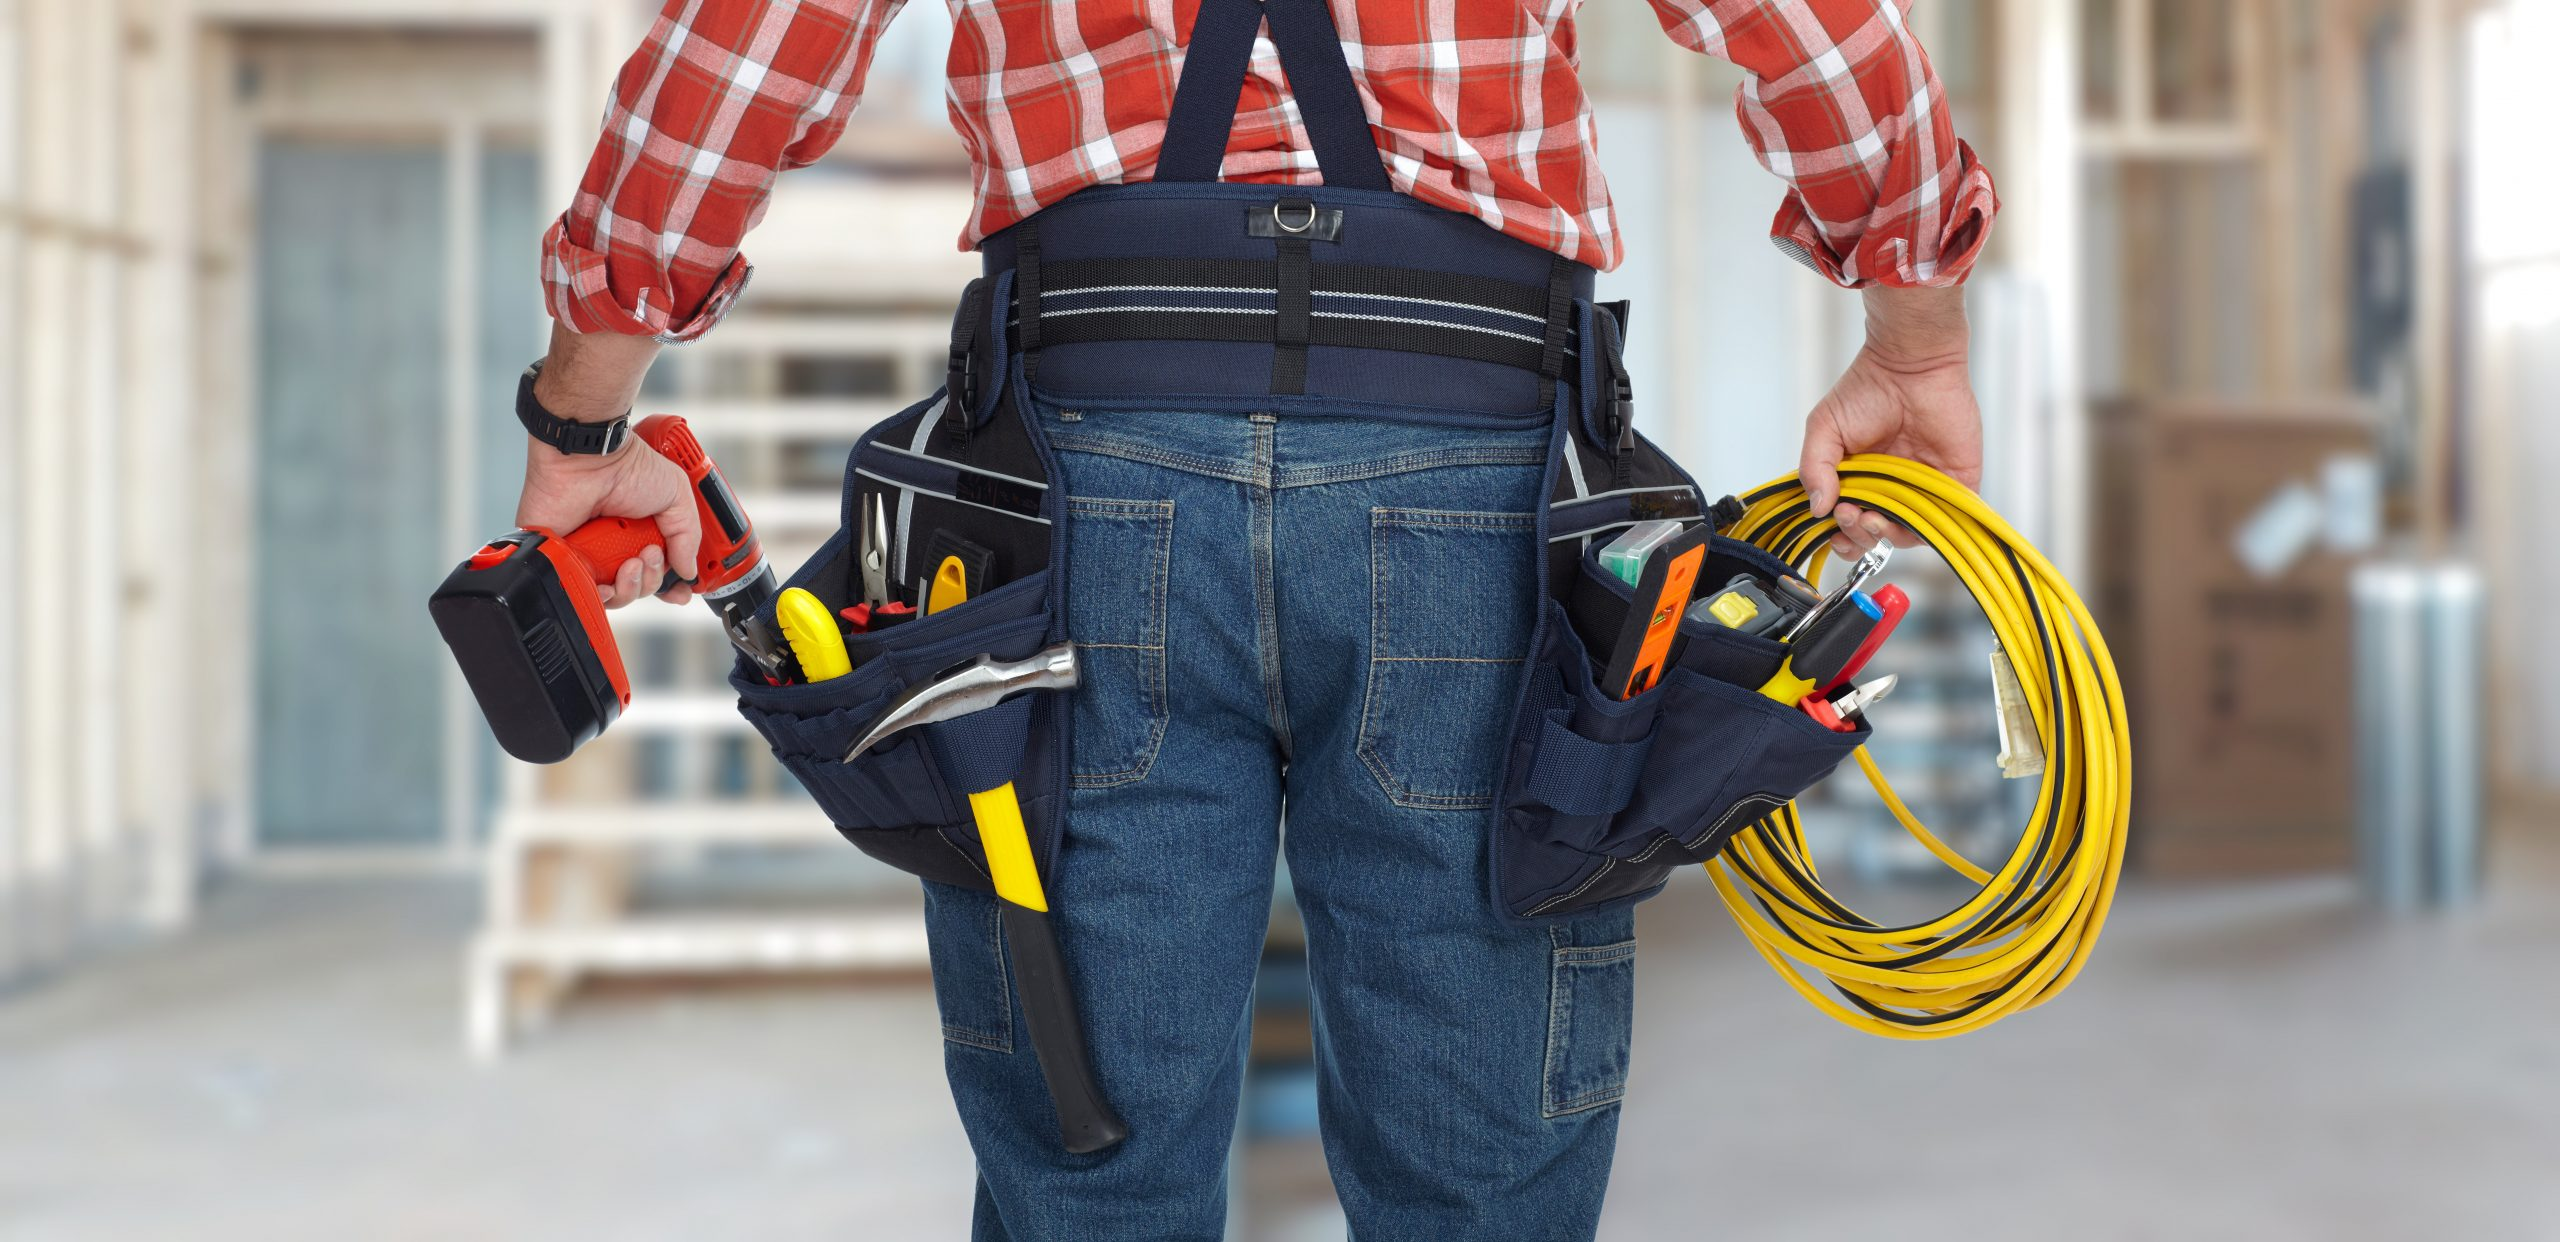 Electrician,Man,With,Drill,And,Wire,Cable,Over,Construction,Background.